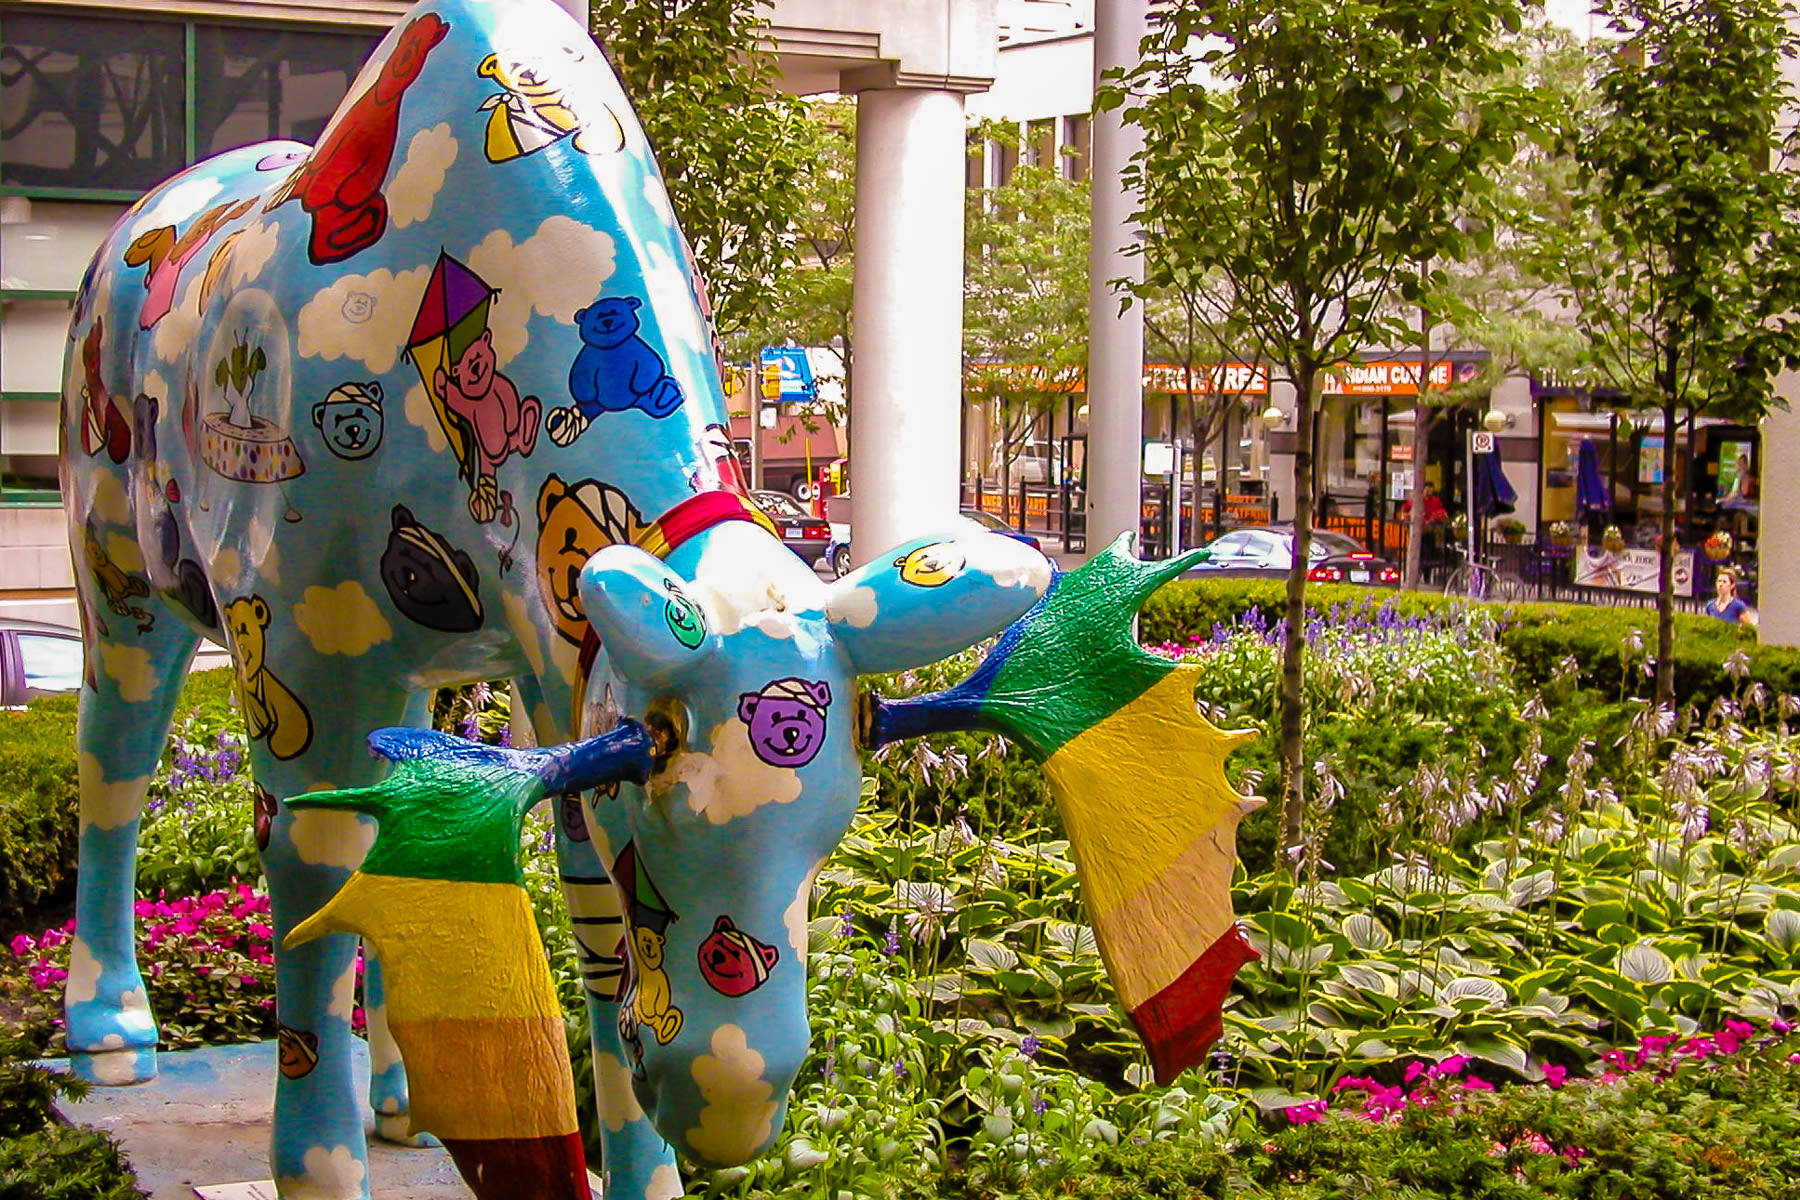 A decorated statue of a moose outside of Toronto's Hospital for Sick Children.